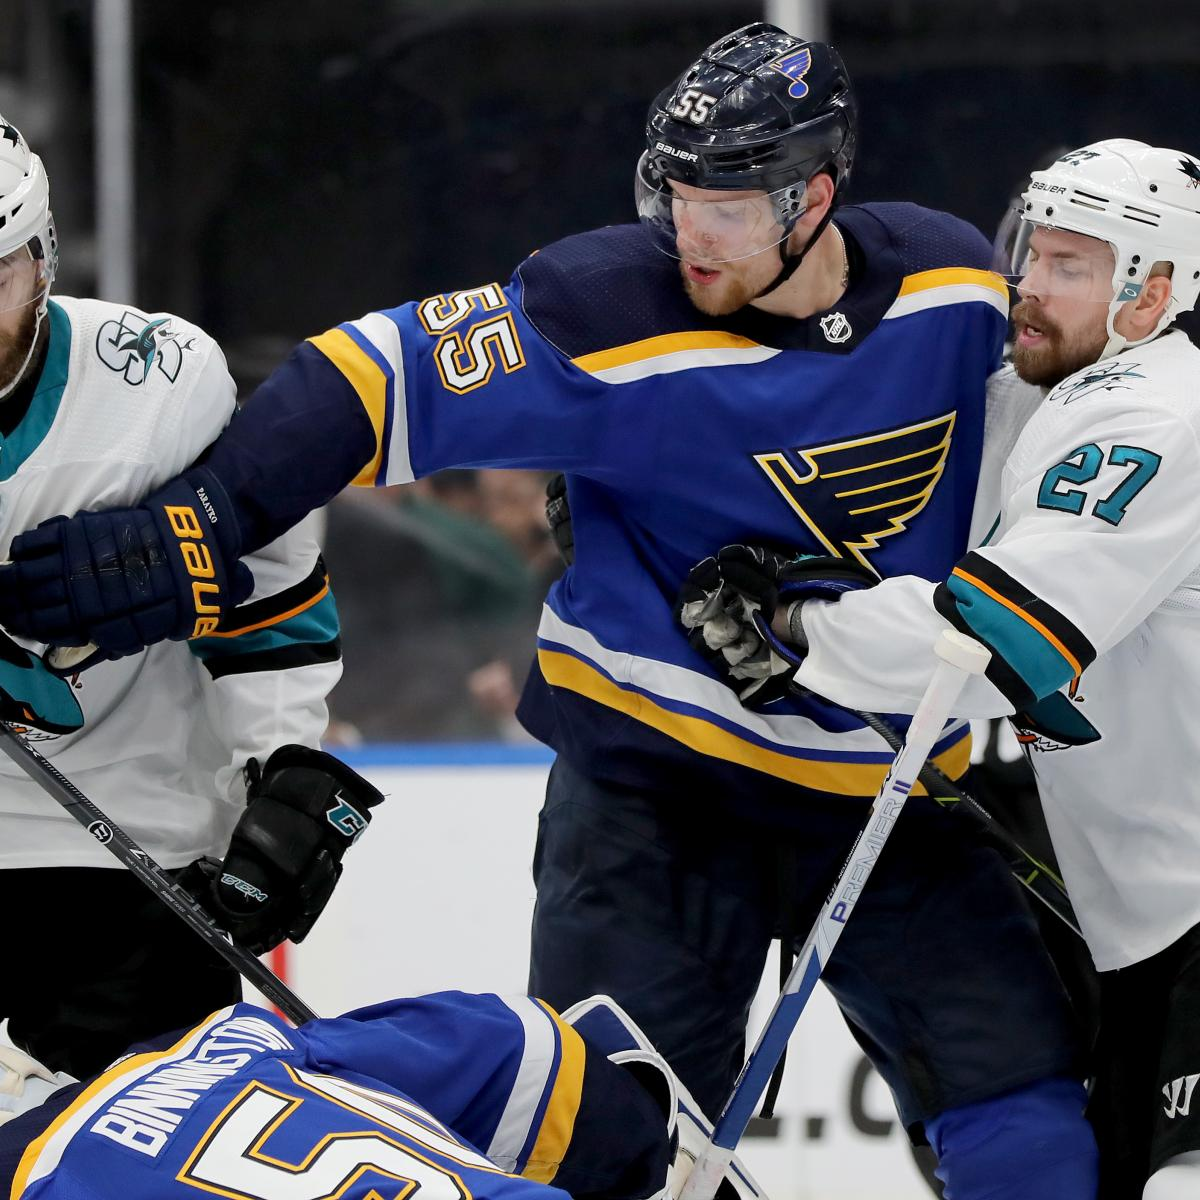 NHL Playoff Bracket 2019: Latest Odds, TV Schedule And